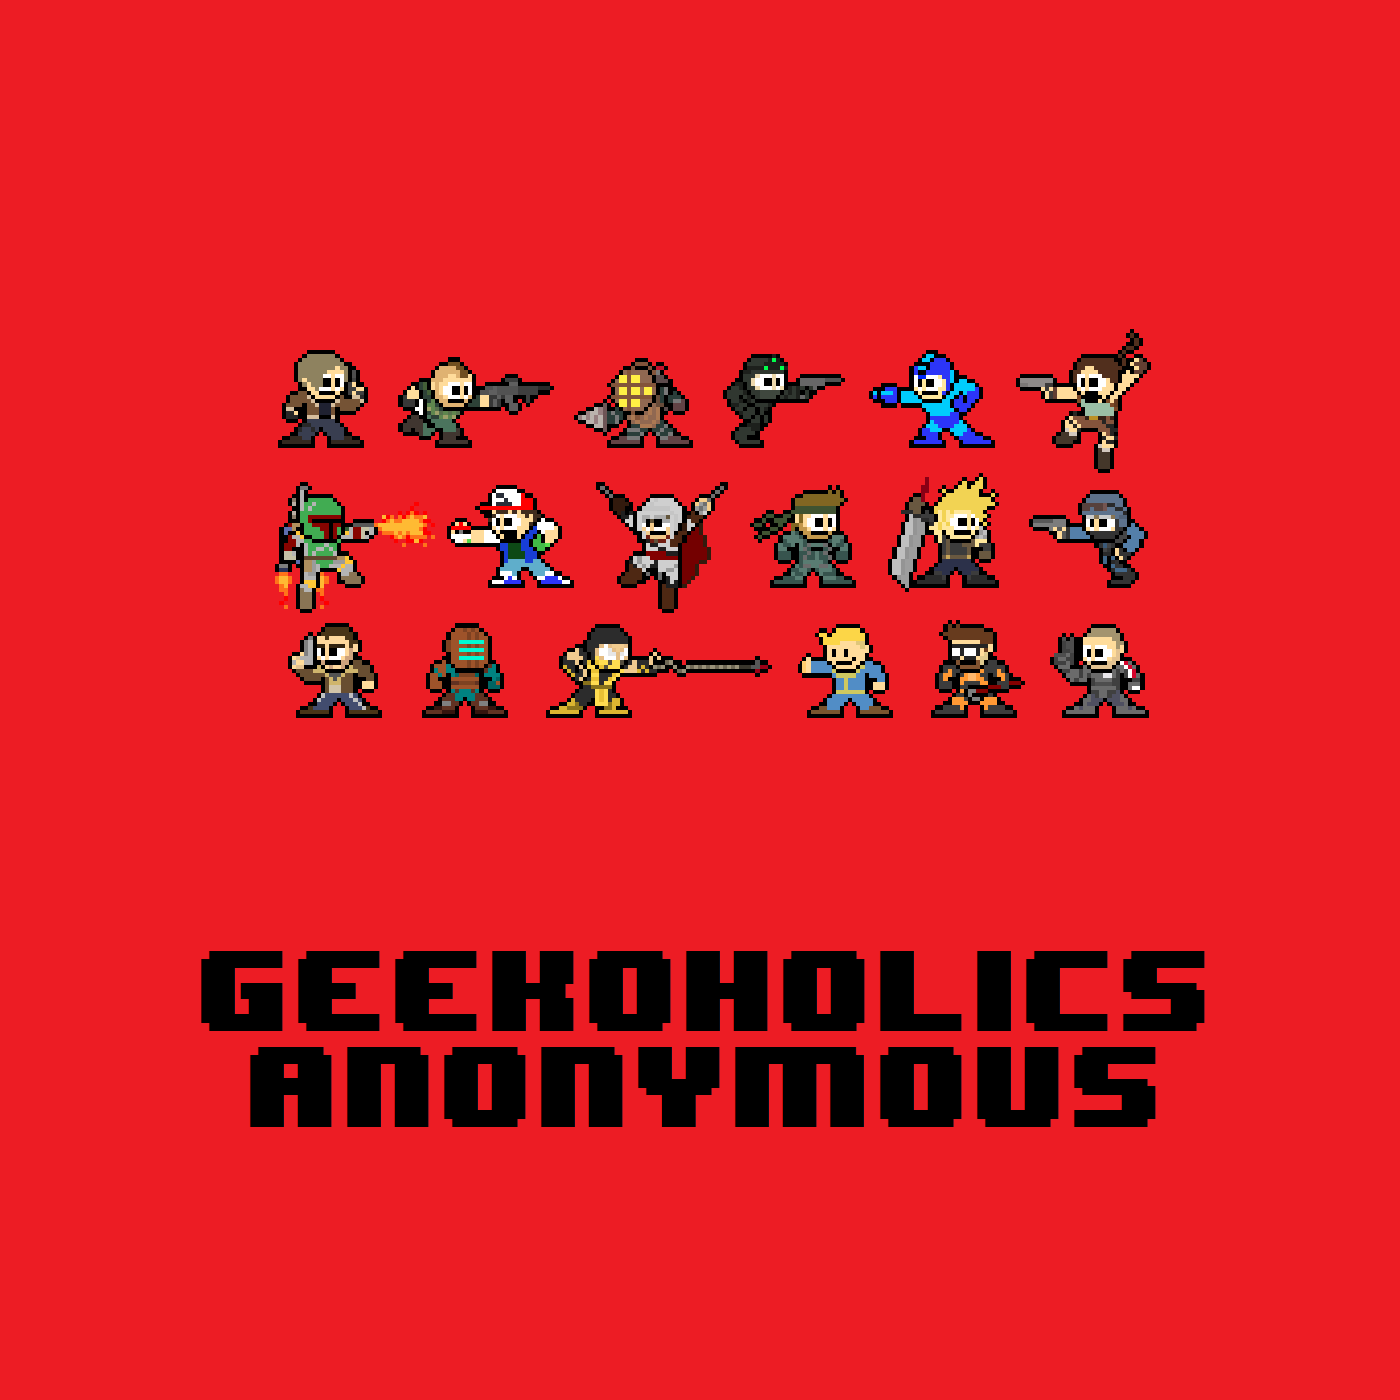 Resident Evil VIIIage, Demon's Soul's, Monster Hunter Rise, Invincible and more - Geekoholics Anonymous Podcast 299 show art